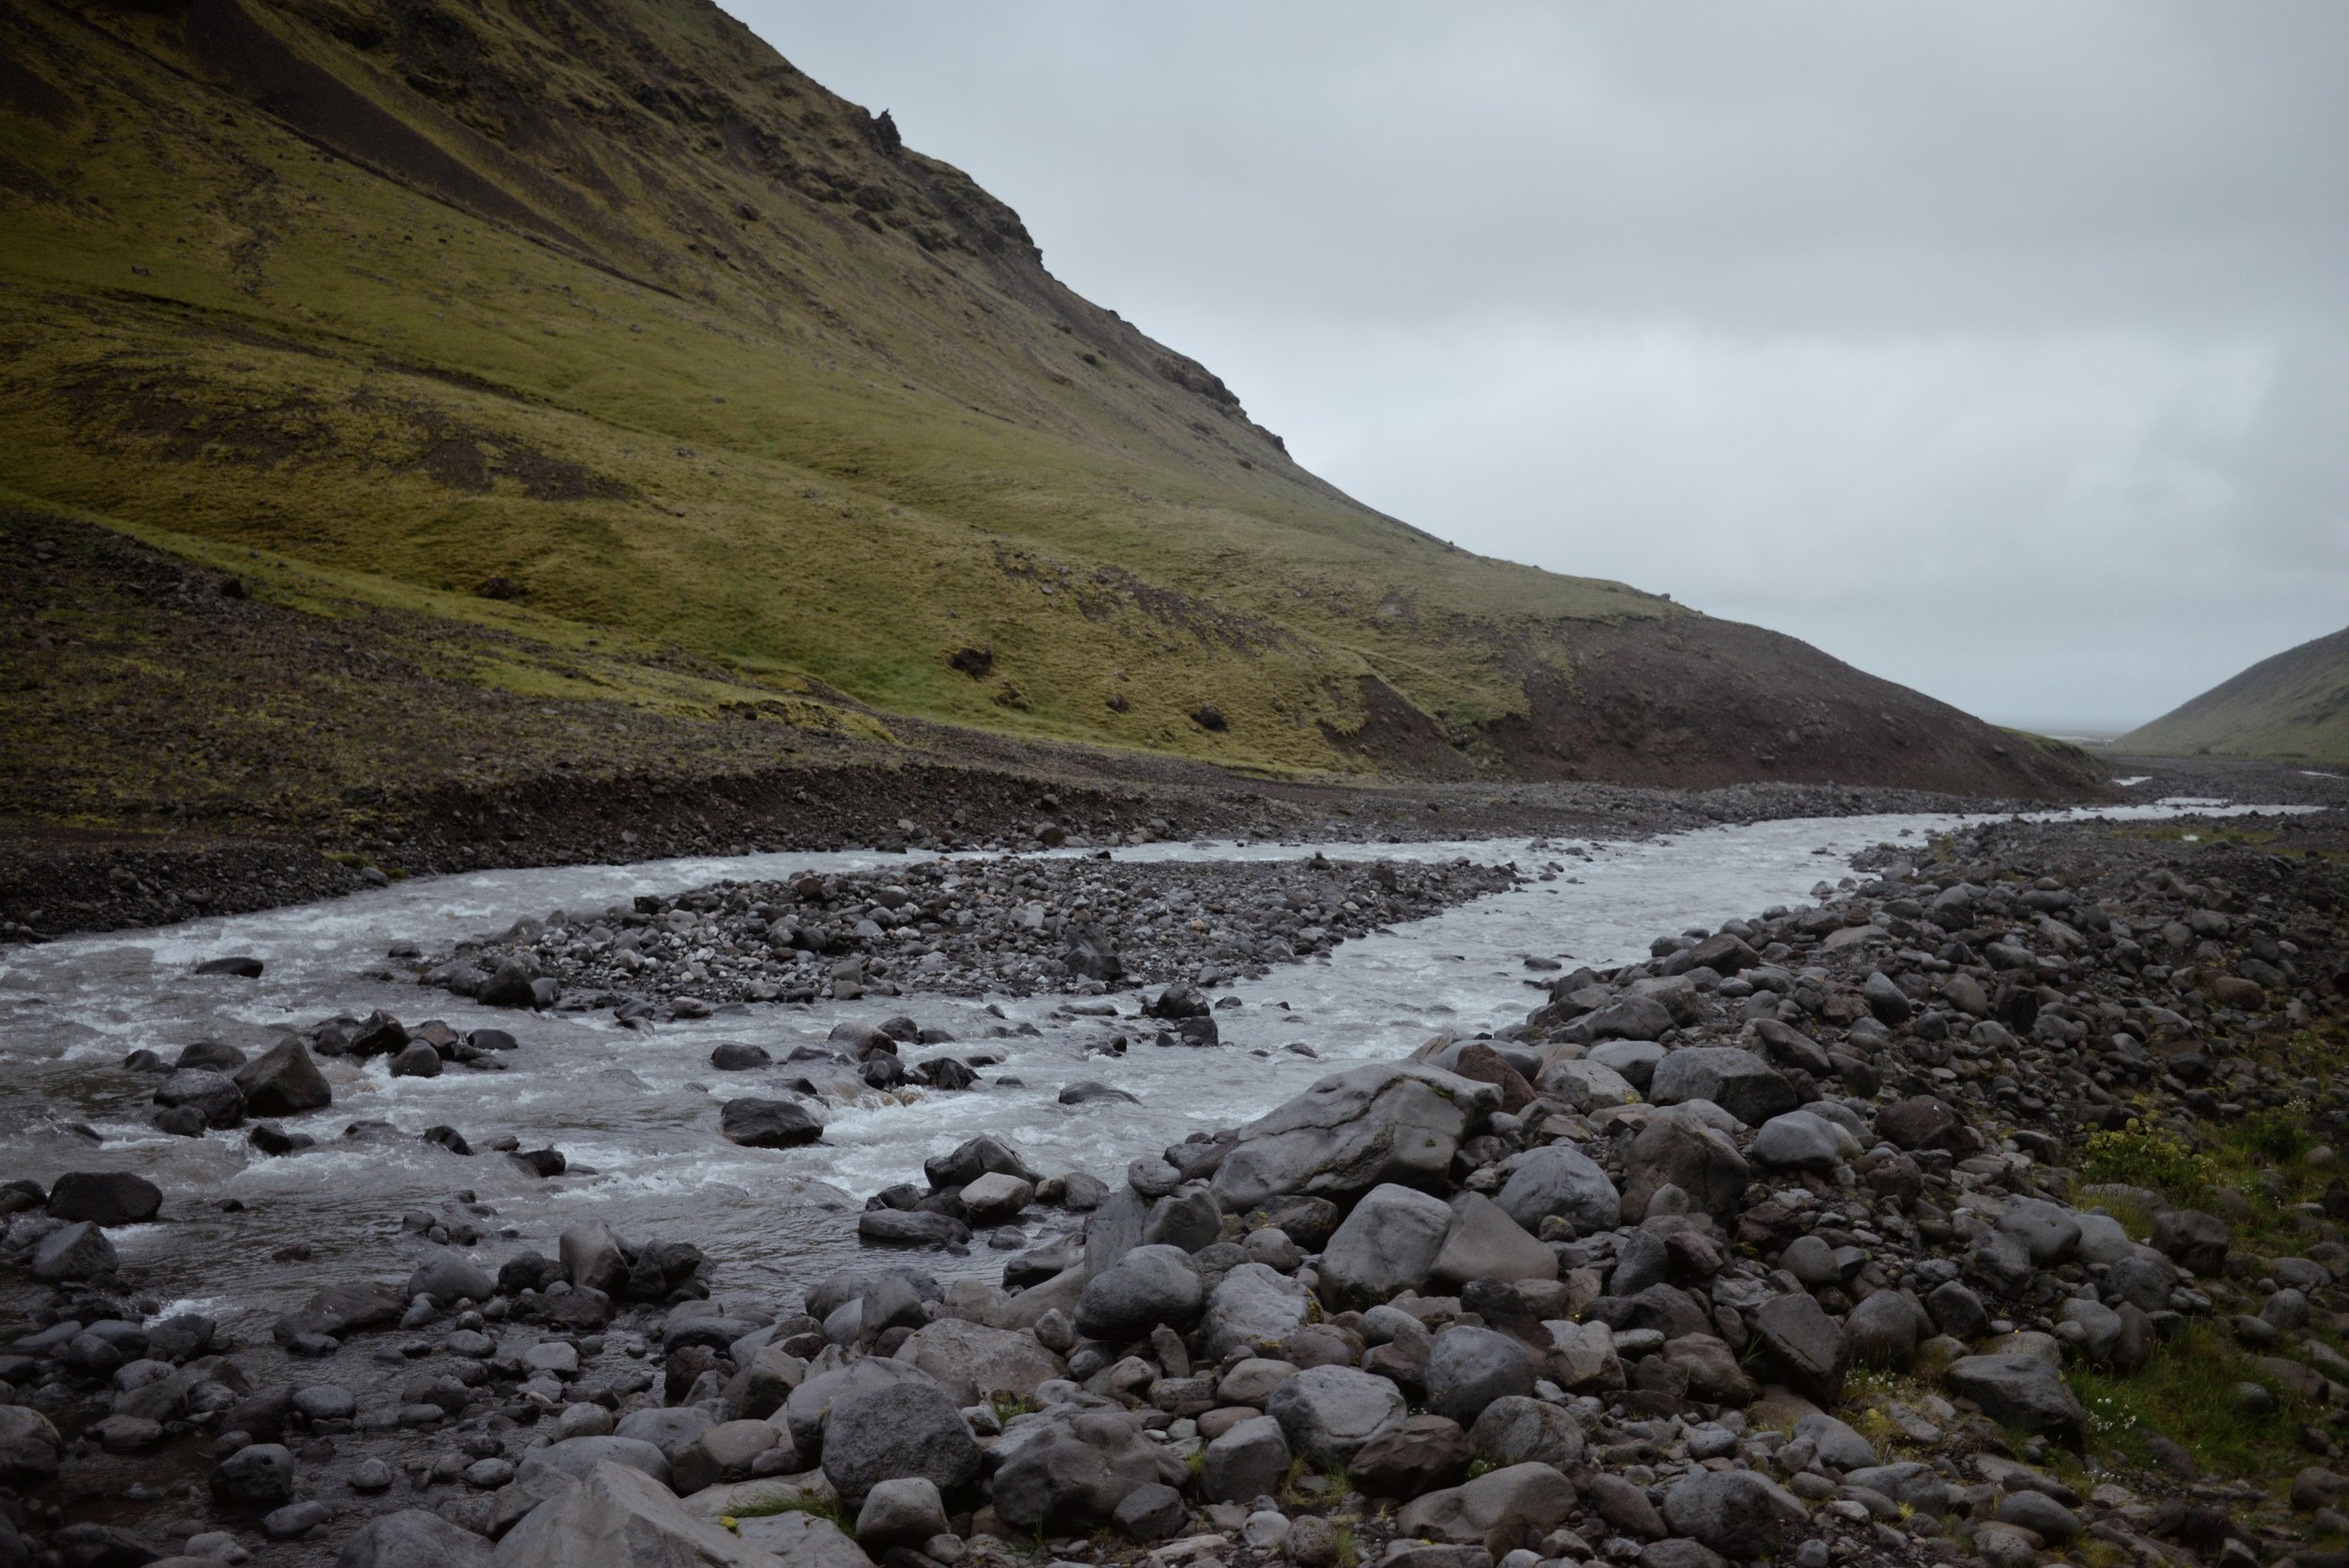 The-Look-Principle-Top-Ten-Most-Instagramable-Places-In-Iceland-16.jpg